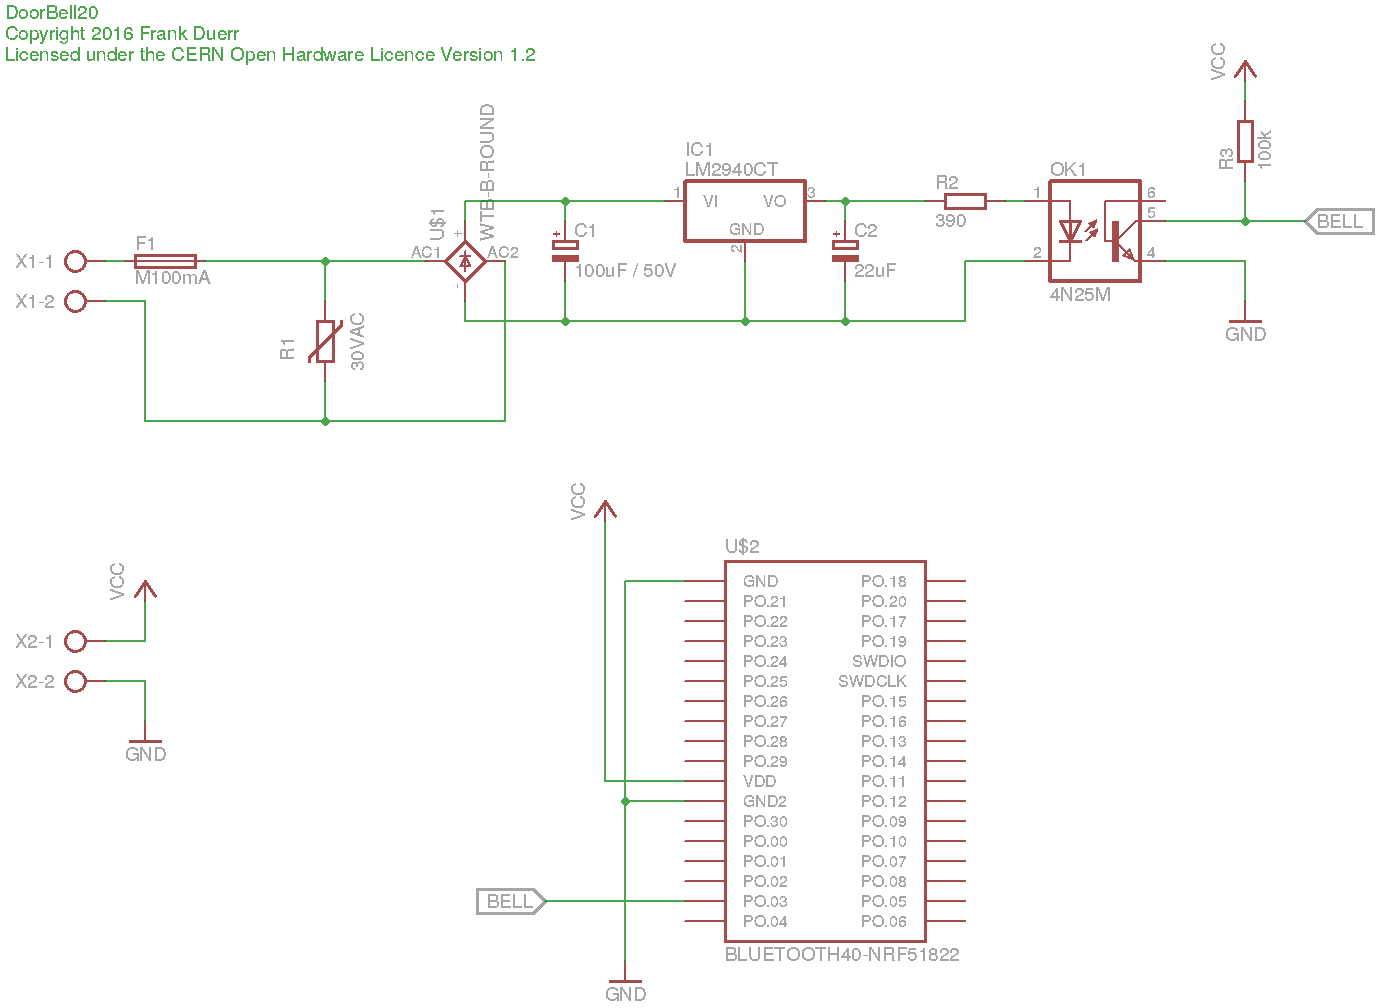 Schematic of DoorBell20 device